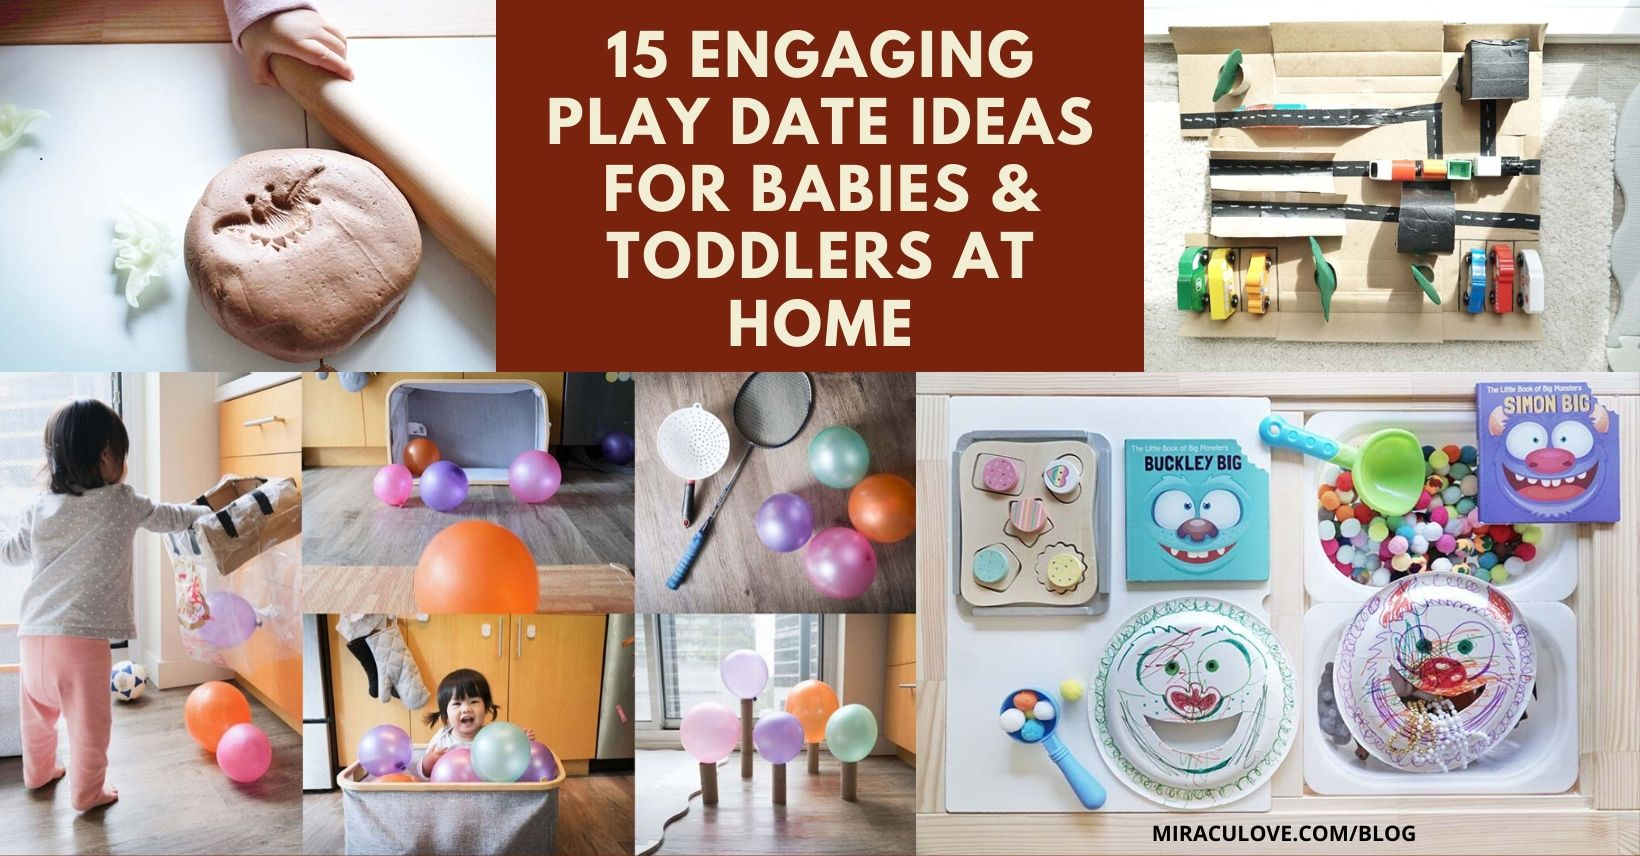 15 Engaging Play Date Ideas for Babies & Toddlers At Home